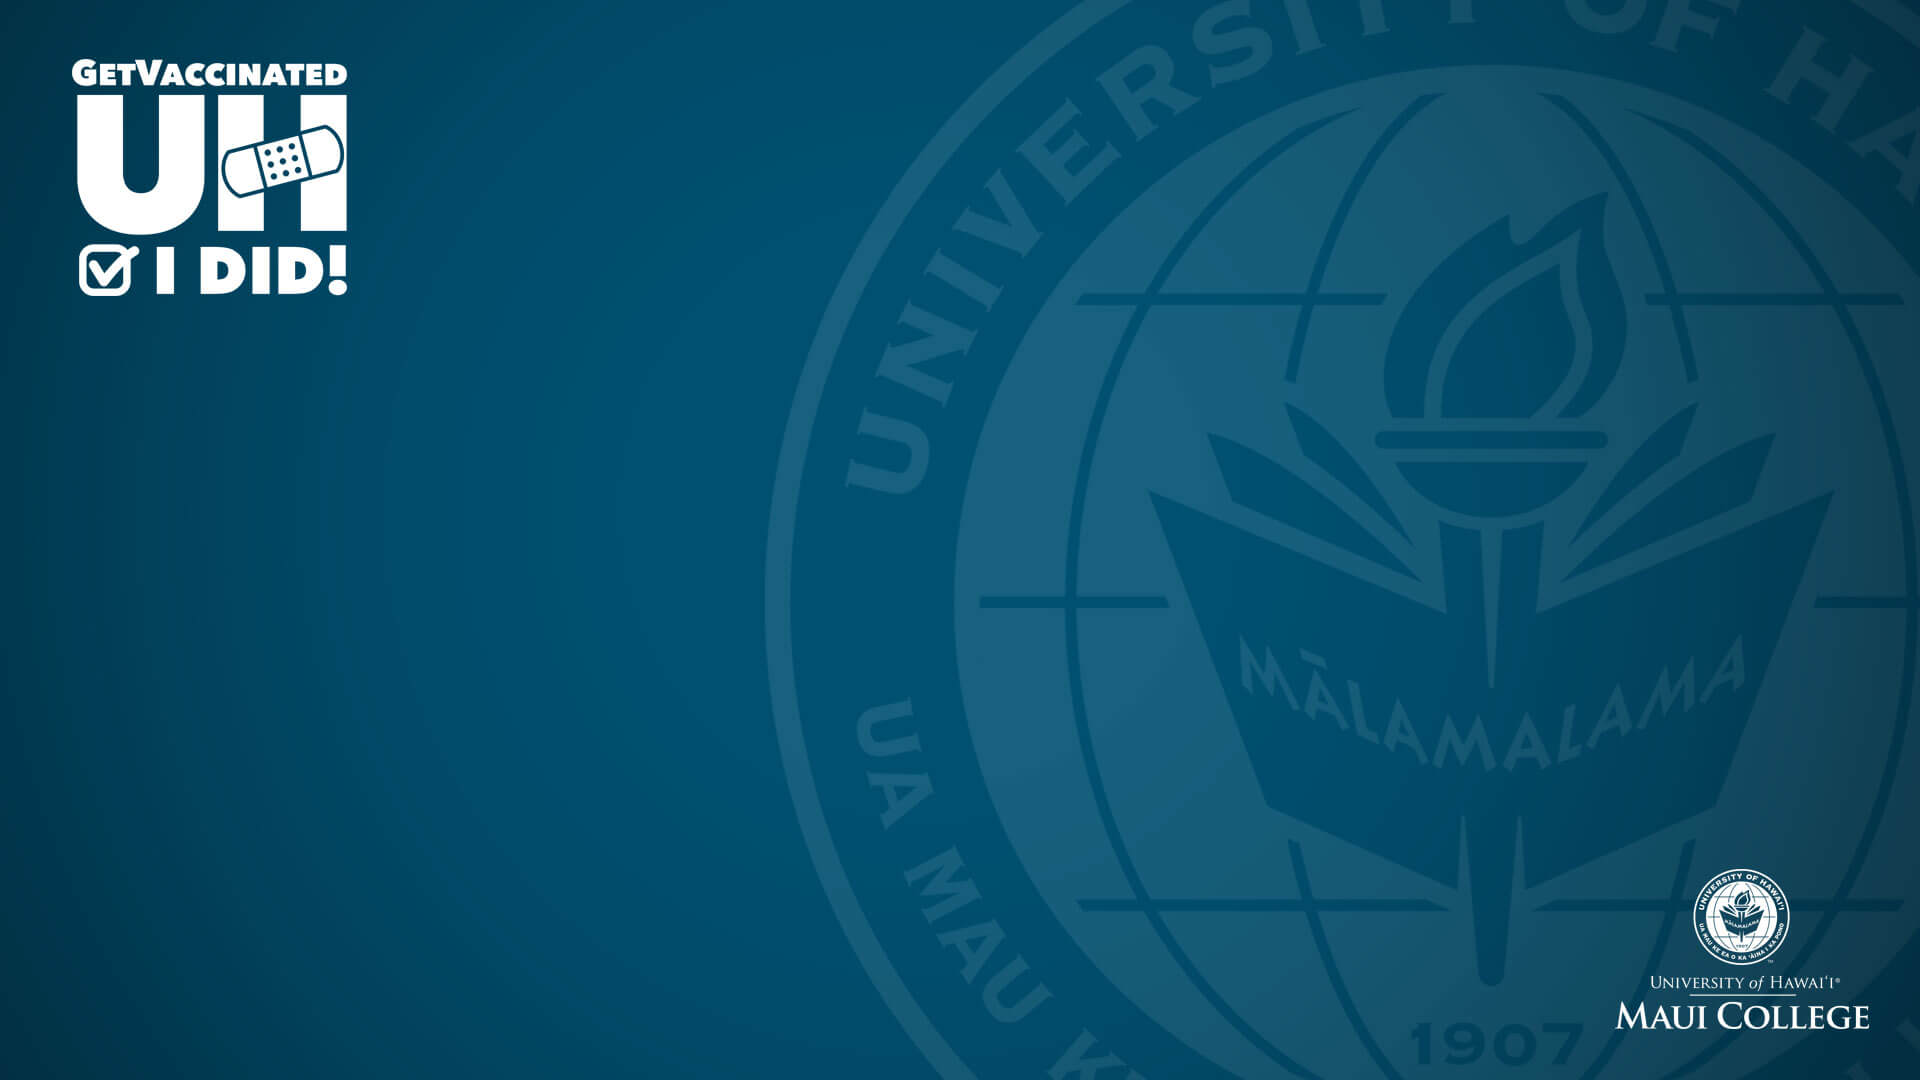 Get vaccinated, I did-Maui College Zoom background with seal and nameplate